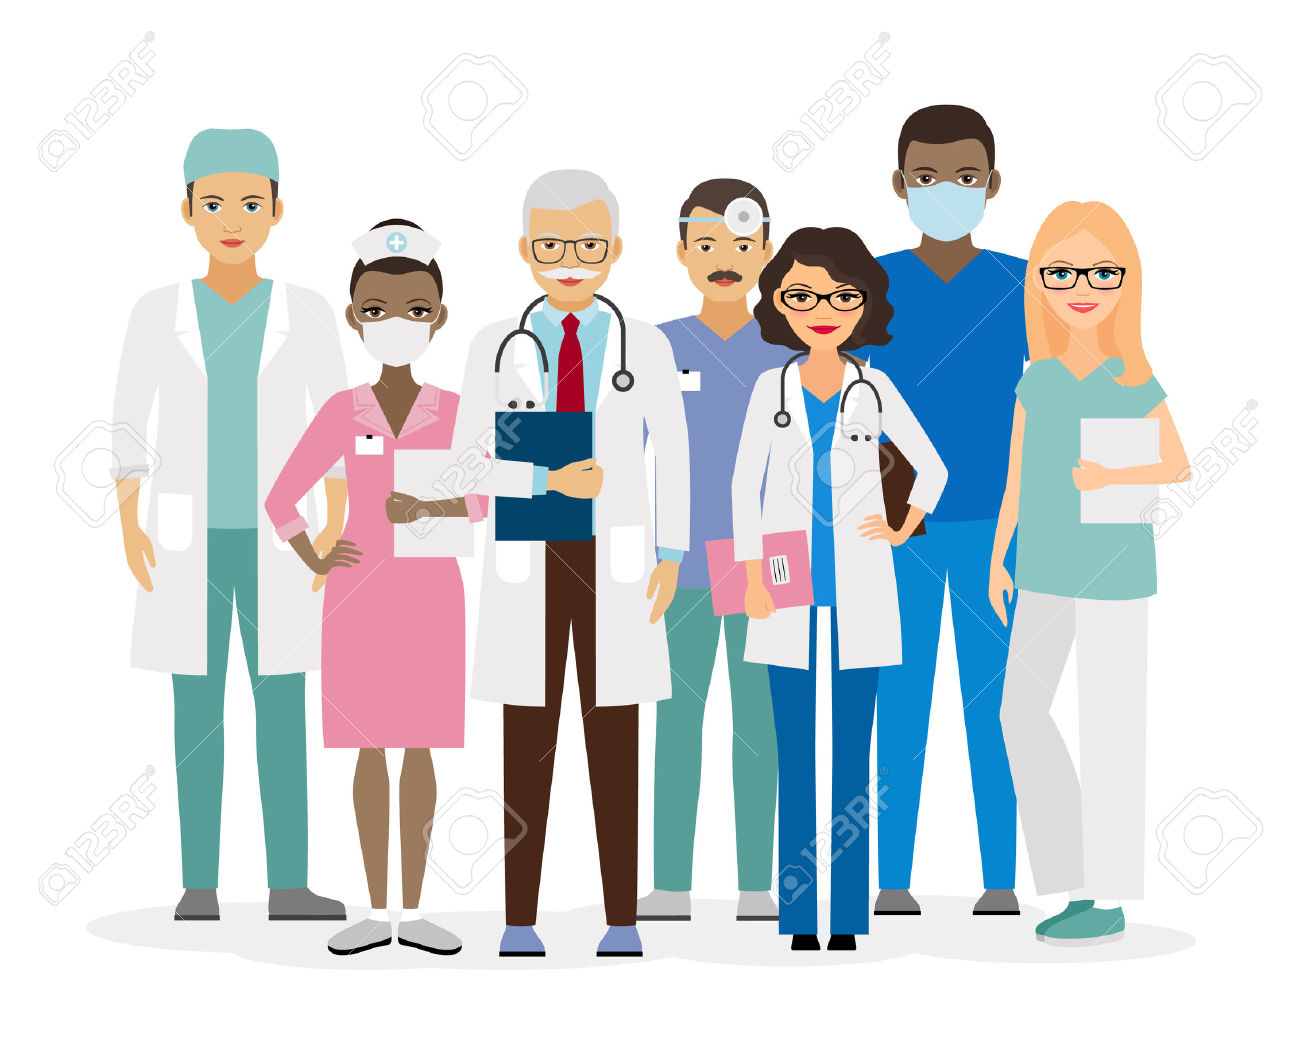 hospital workers clipart - Clipground